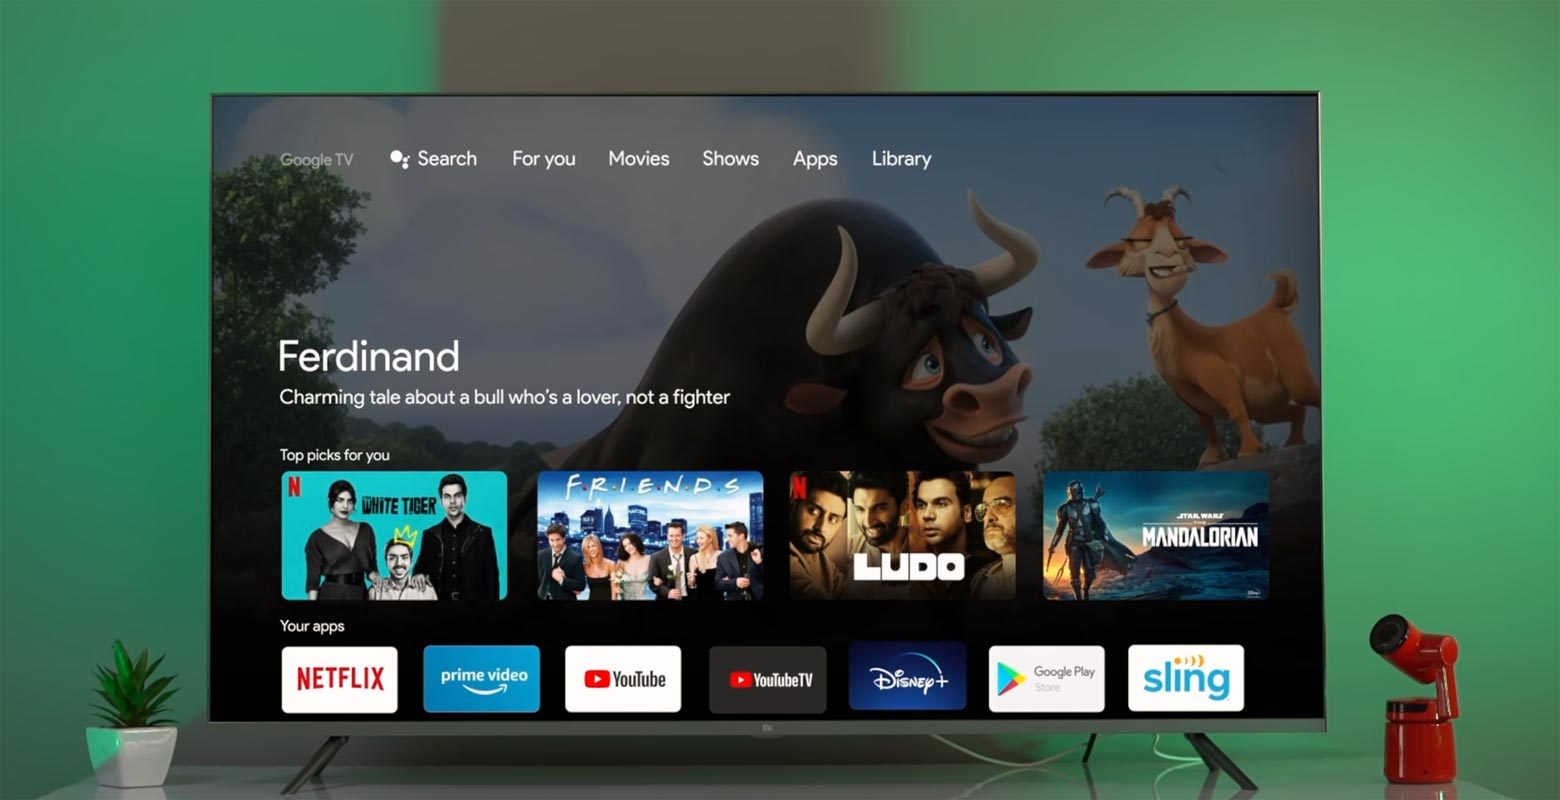 Google TV UI in Android TV with Apps